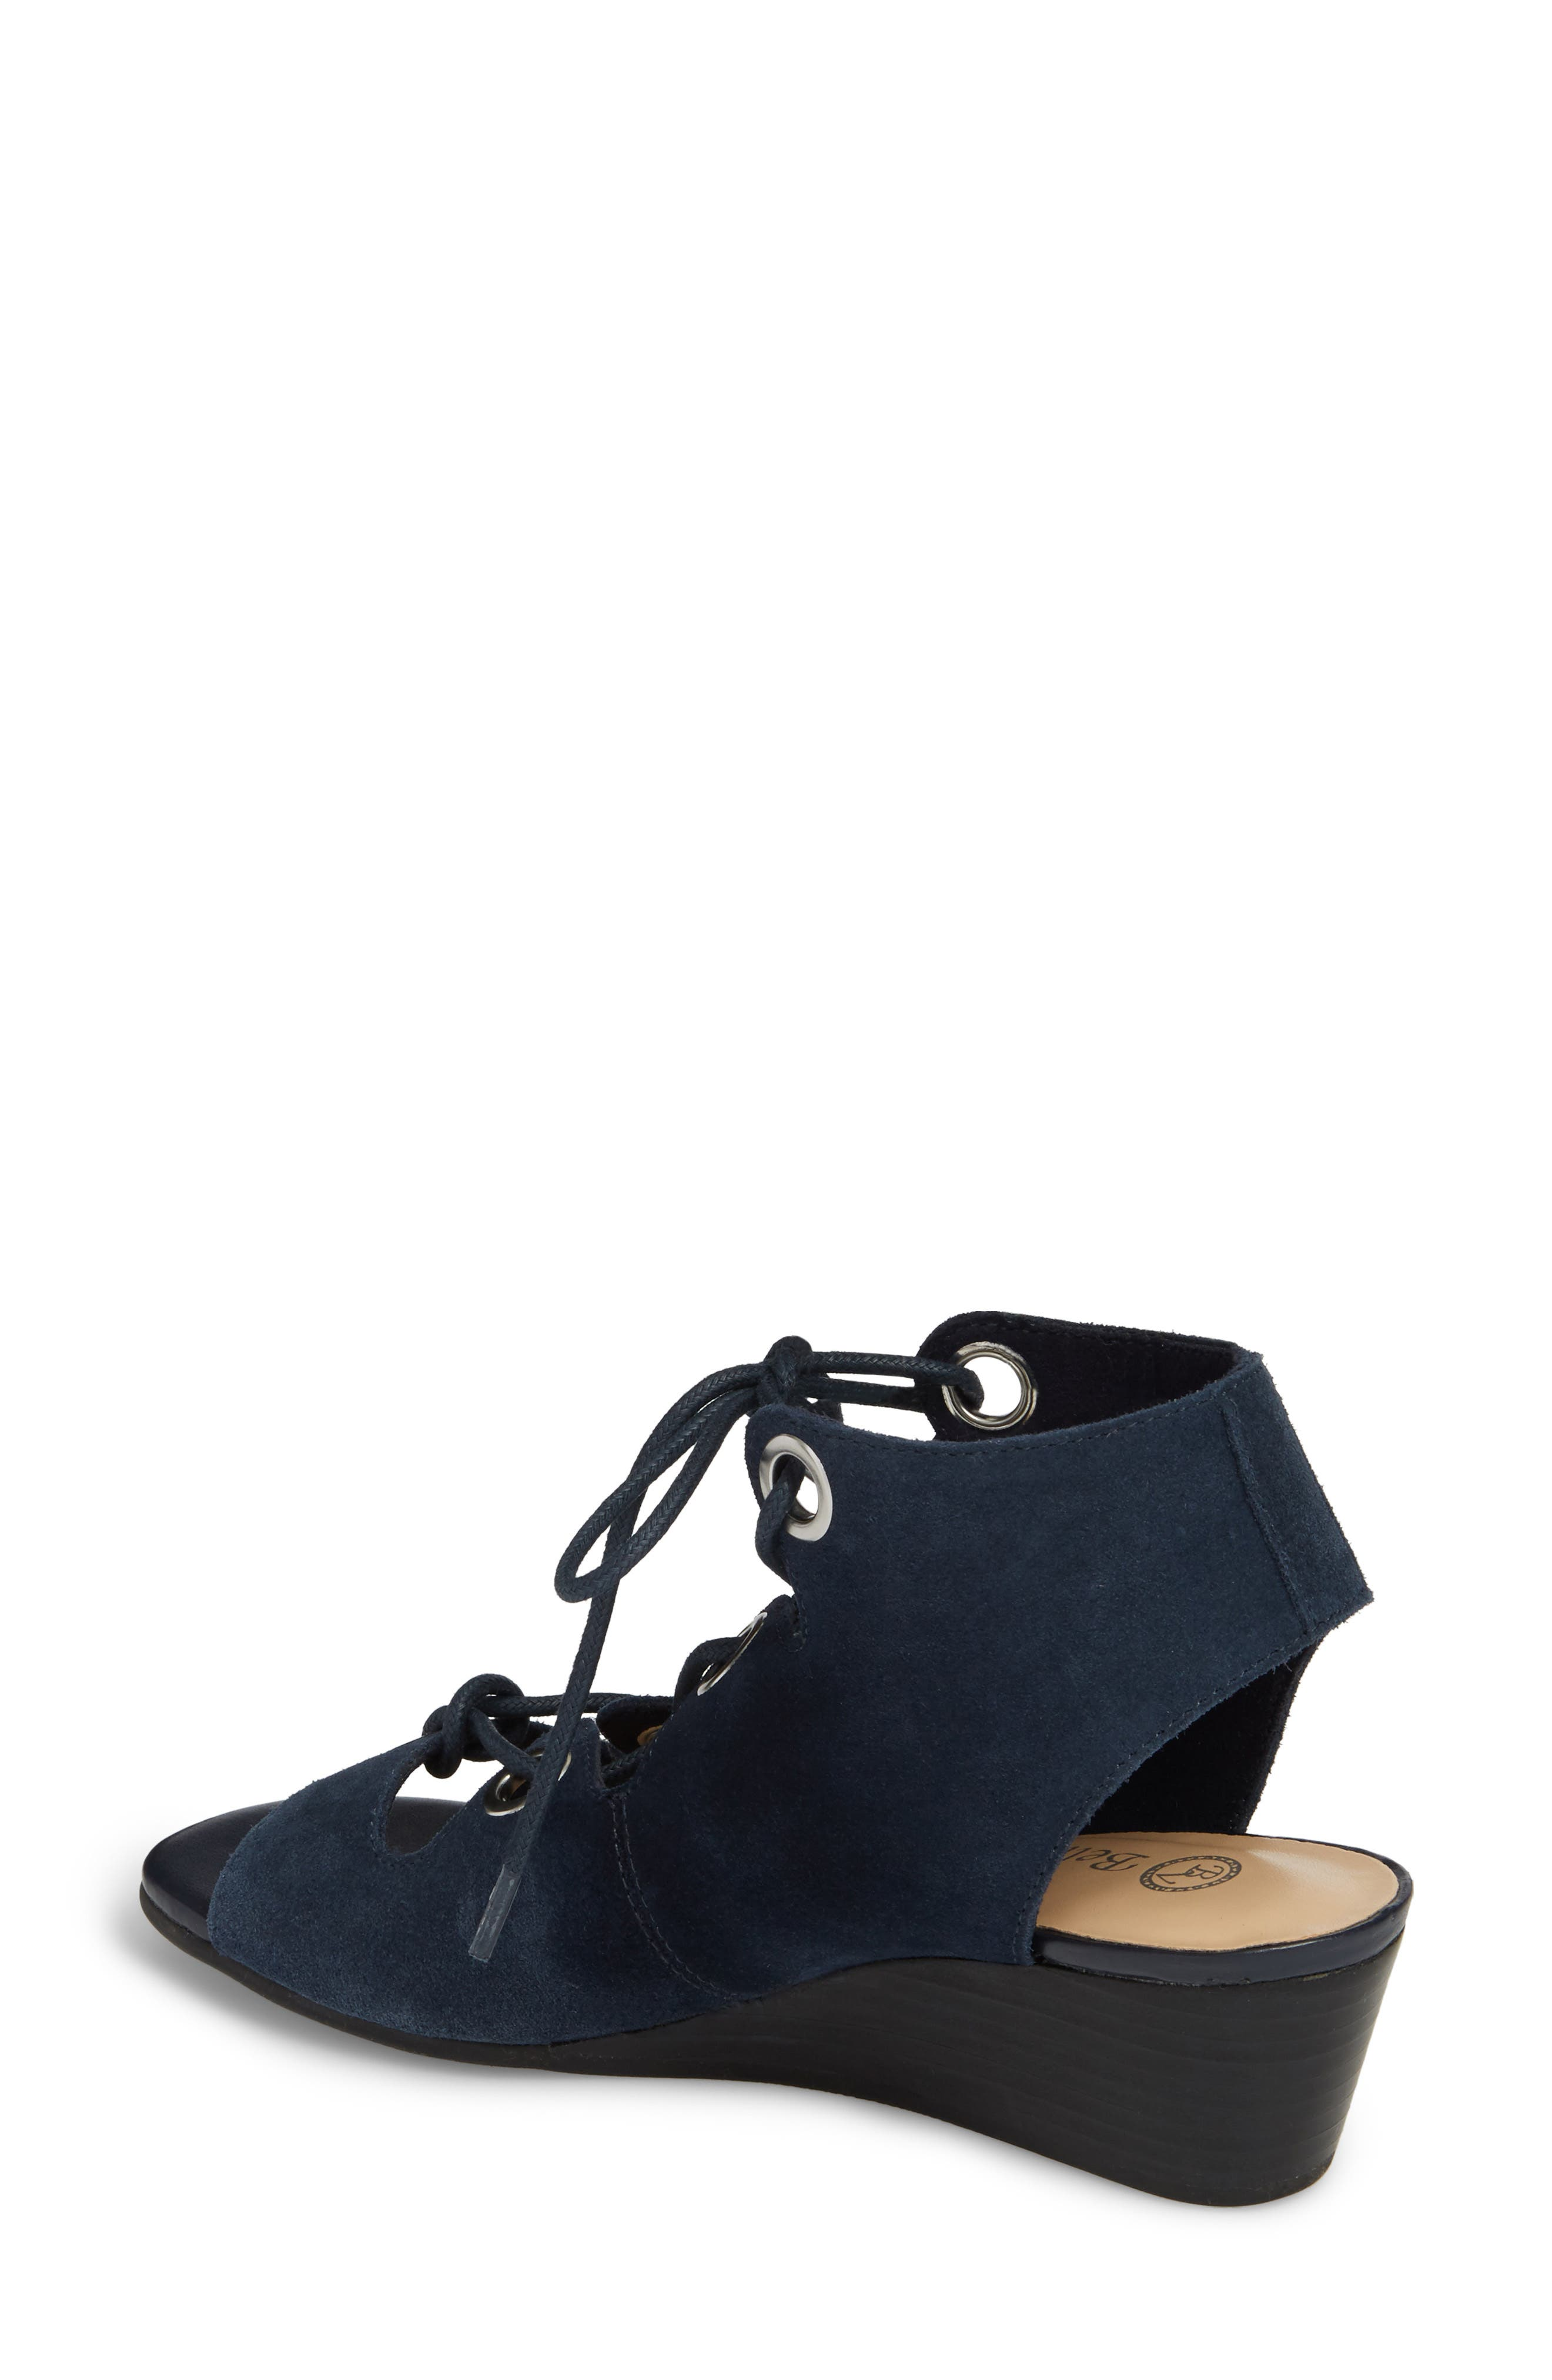 Ingrid Lace-Up Sandal,                             Alternate thumbnail 2, color,                             Navy Suede